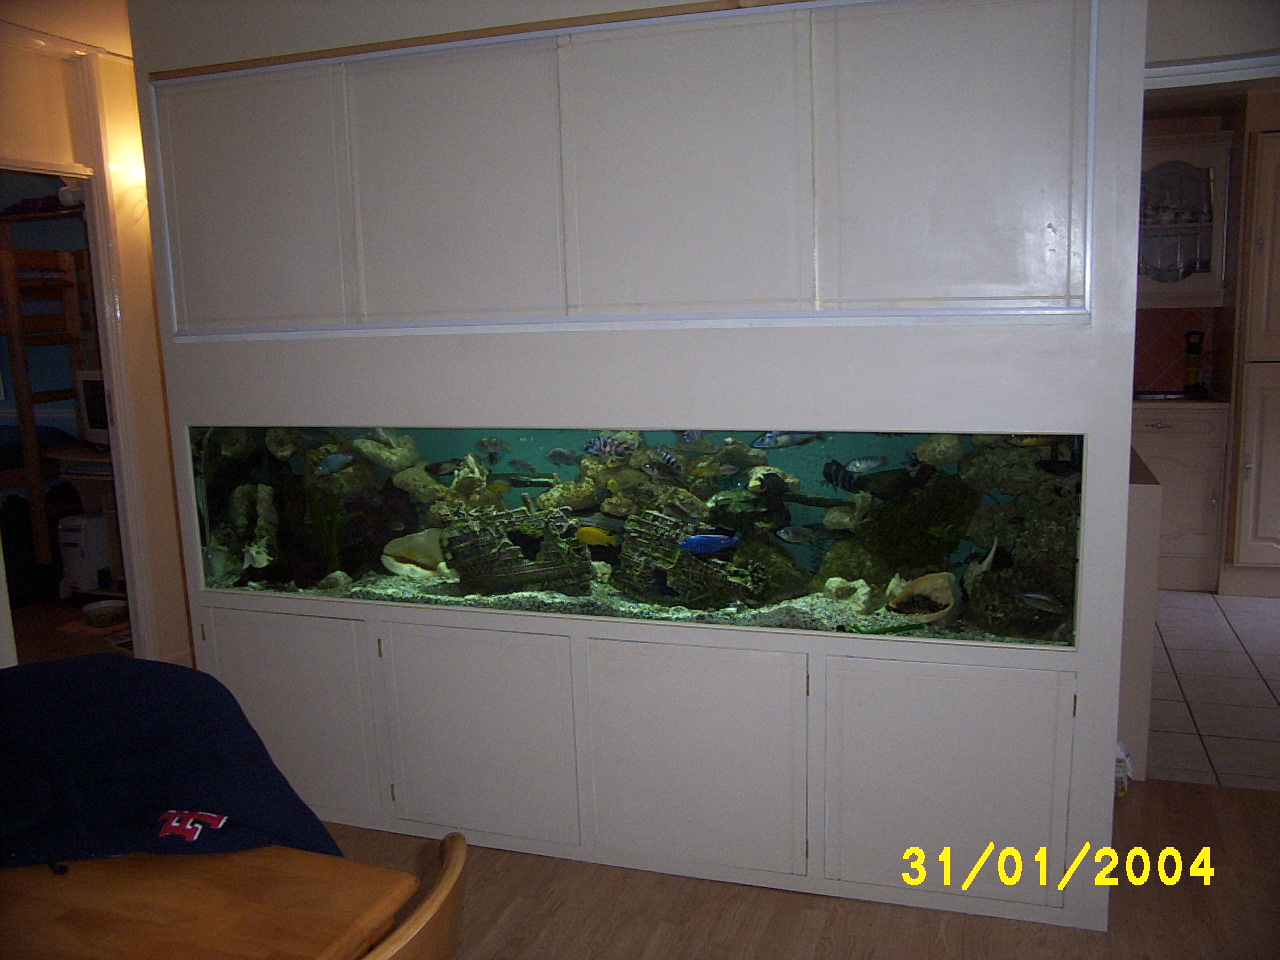 200 gallon fish tank for sale images for 200 gallon fish tank for sale